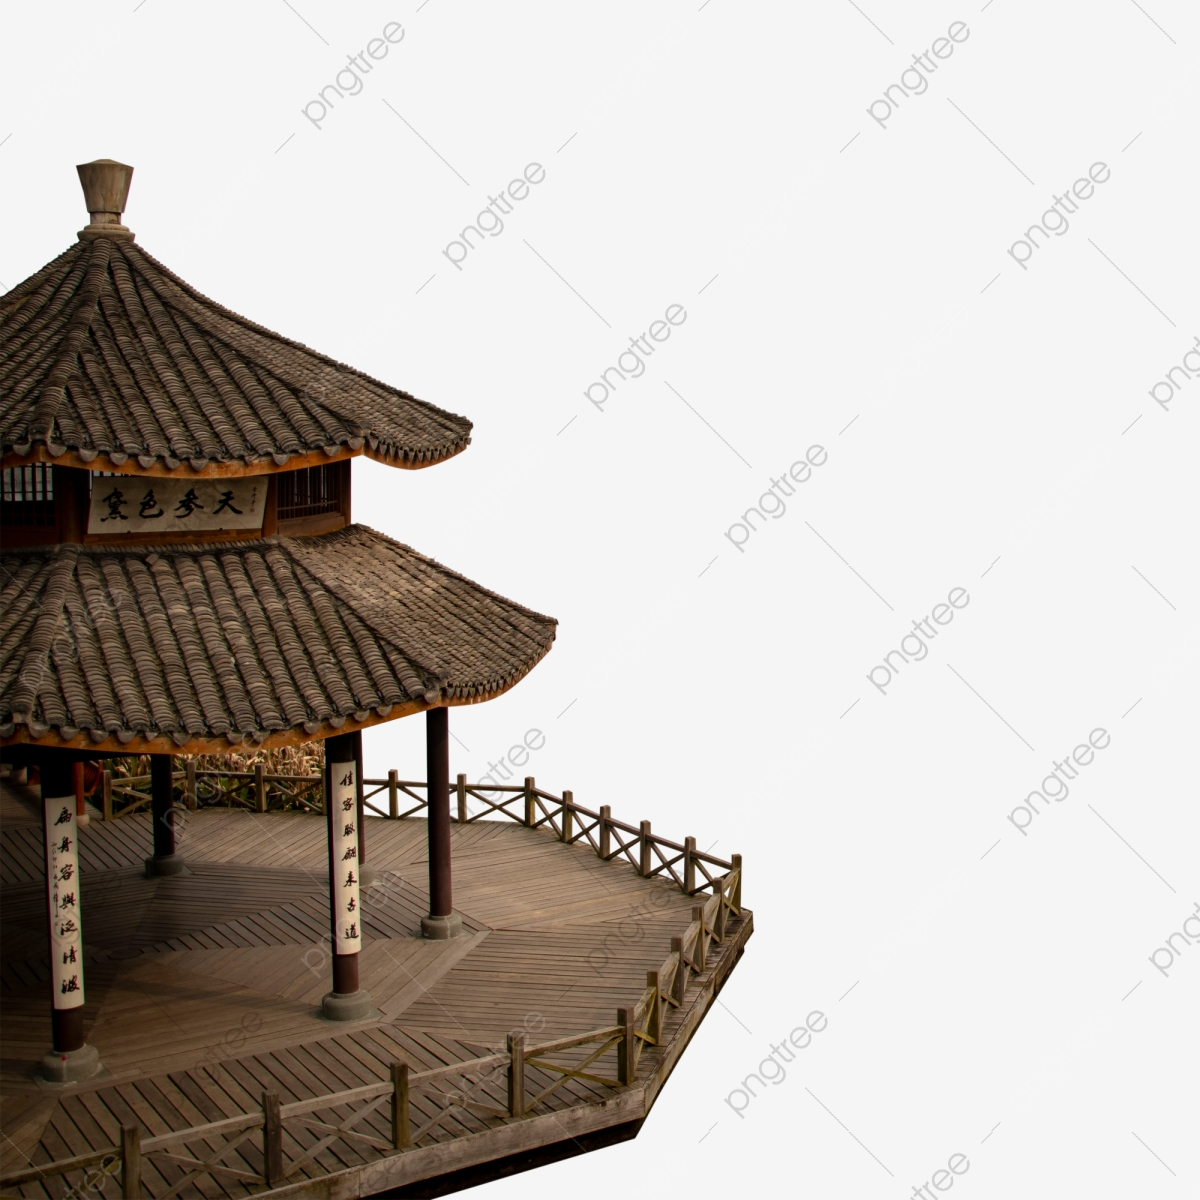 Chinese Traditional Pavilions Stock Illustration - Download Image Now -  iStock